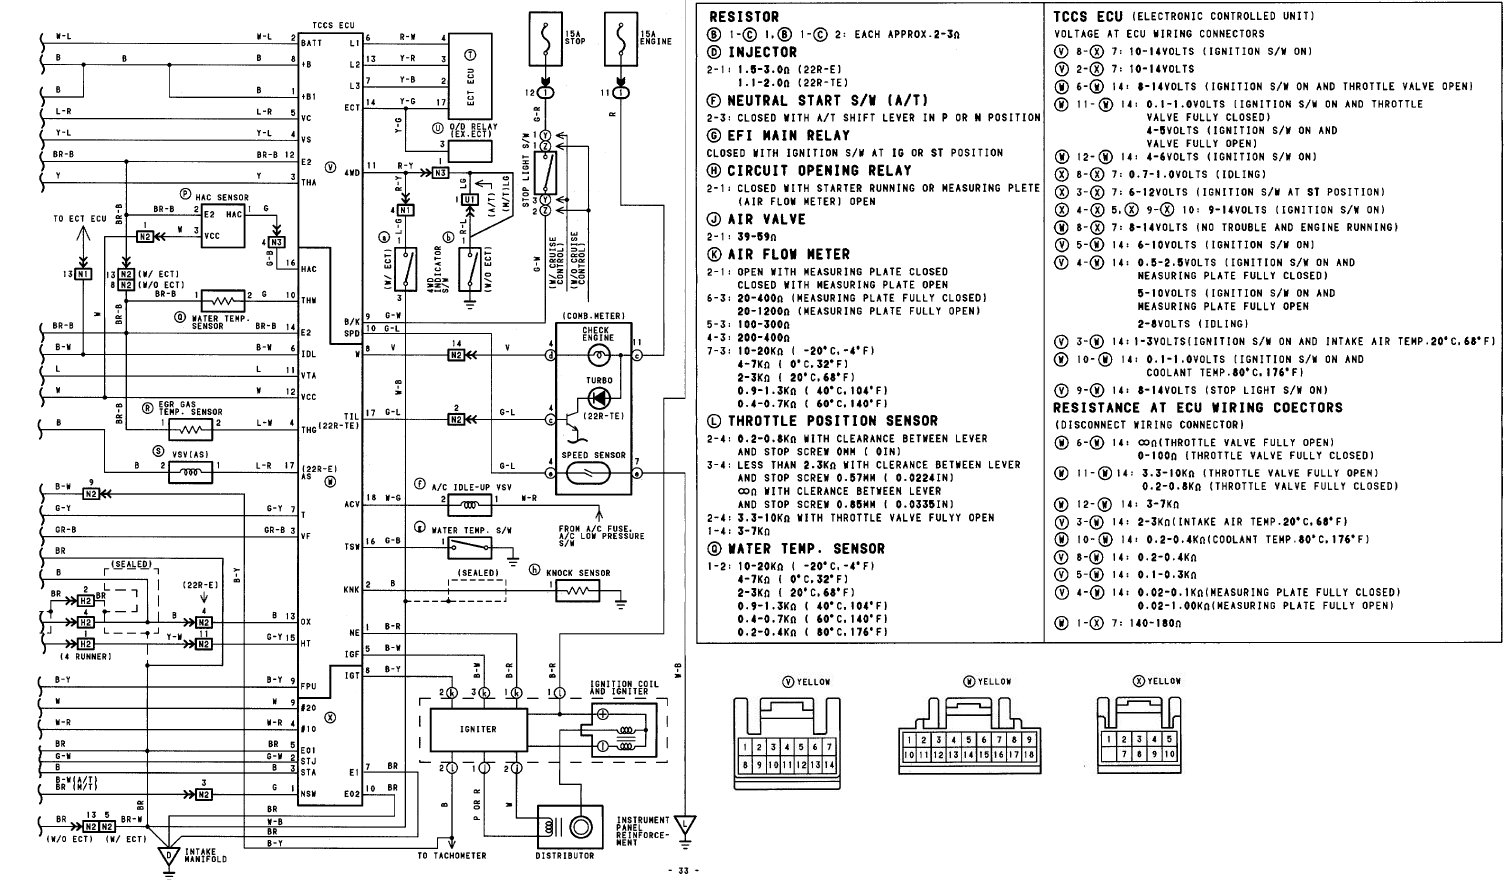 toyota yaris radio wiring harness with Toyota Master on 2009 Chevrolet Silverado 2500 Evaporator And Heater Parts Diagram additionally Toyota Yaris 2009 Electrical Wiring Diagram likewise Fuse Box Template moreover Usb Player For Car Stereo additionally Wire Schematic Toyota Avalon 2010.